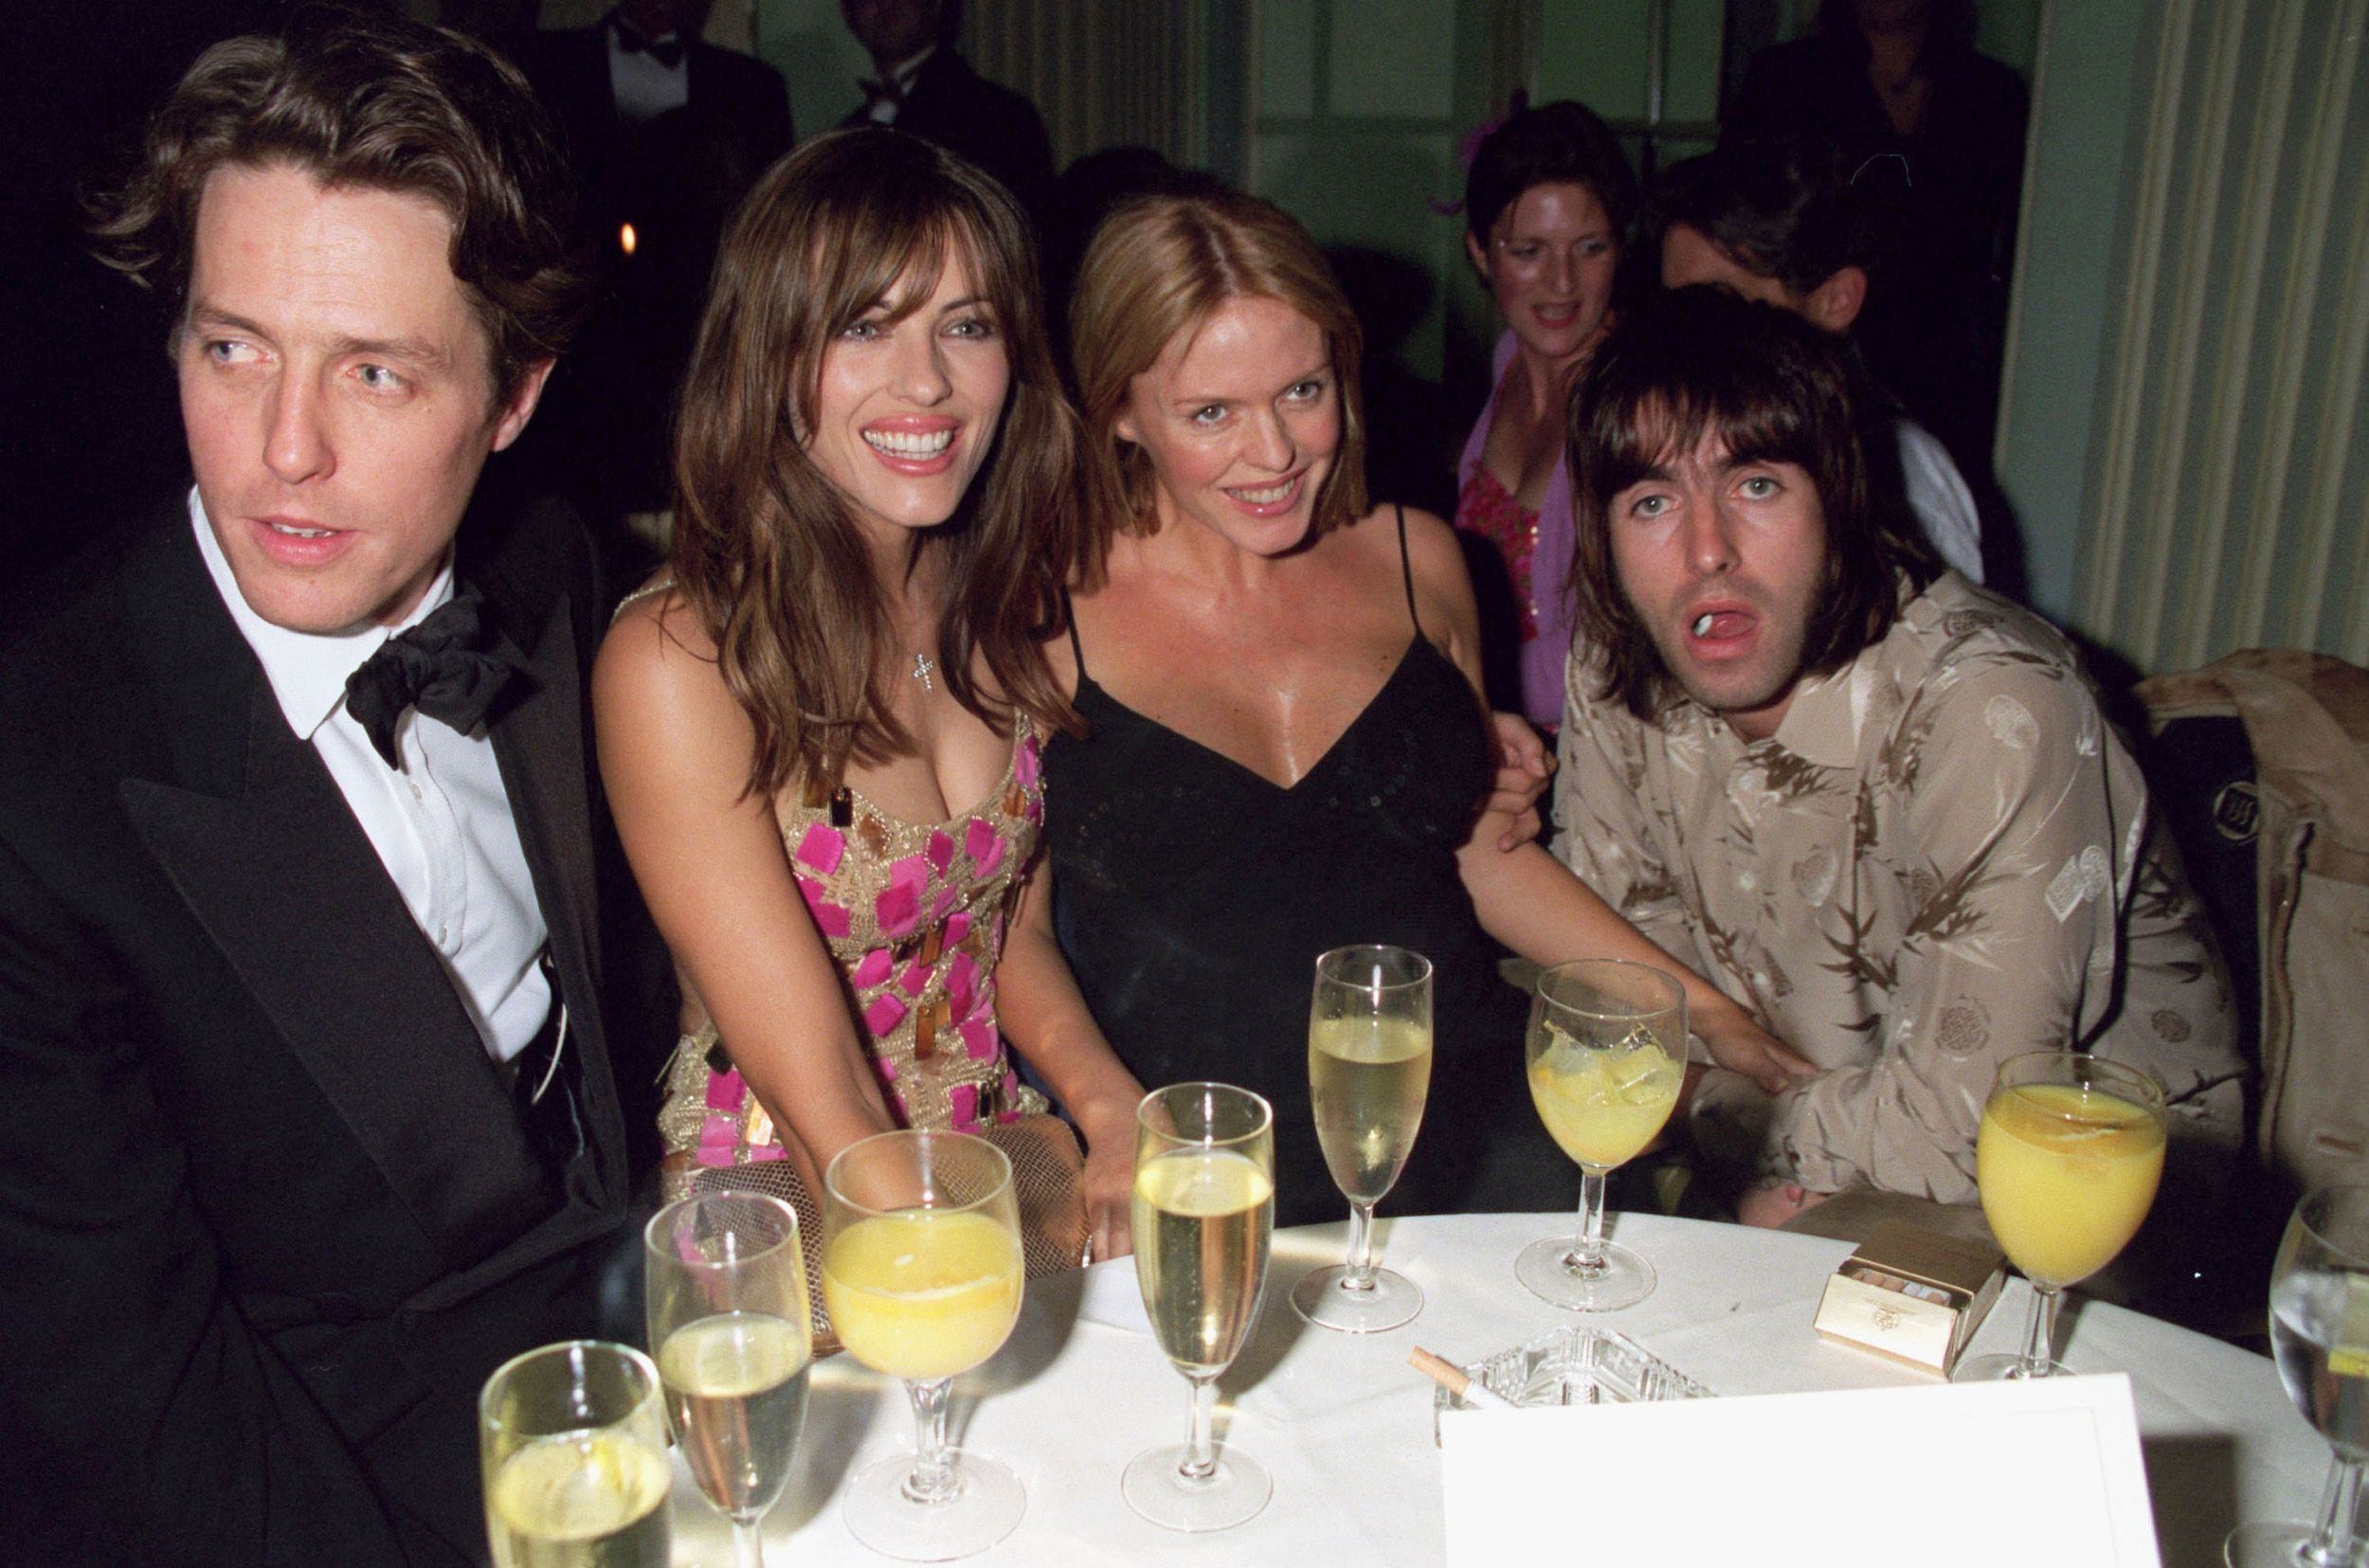 Celebrities Partying in the '90s: The Photos